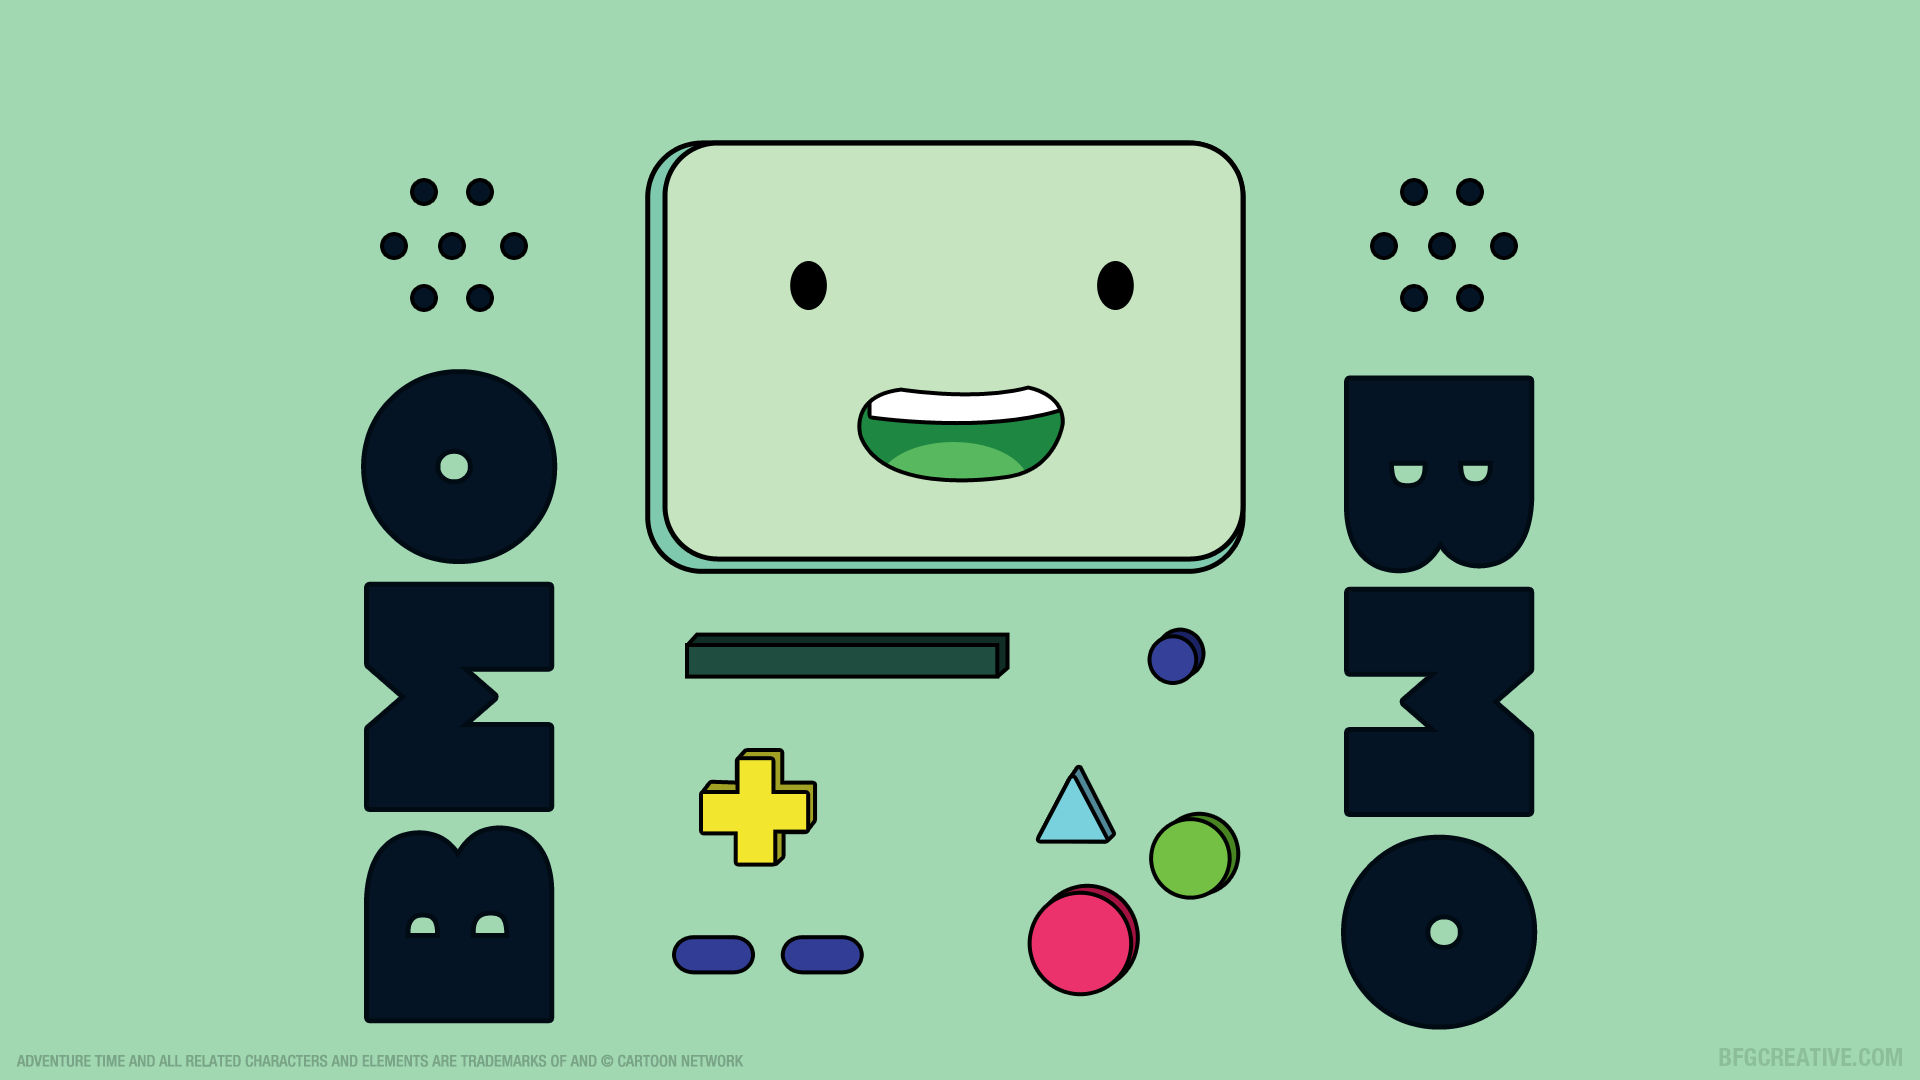 1920x1080 wallpaper of Beemo BMO from Adventure Time BMO 1920x1080